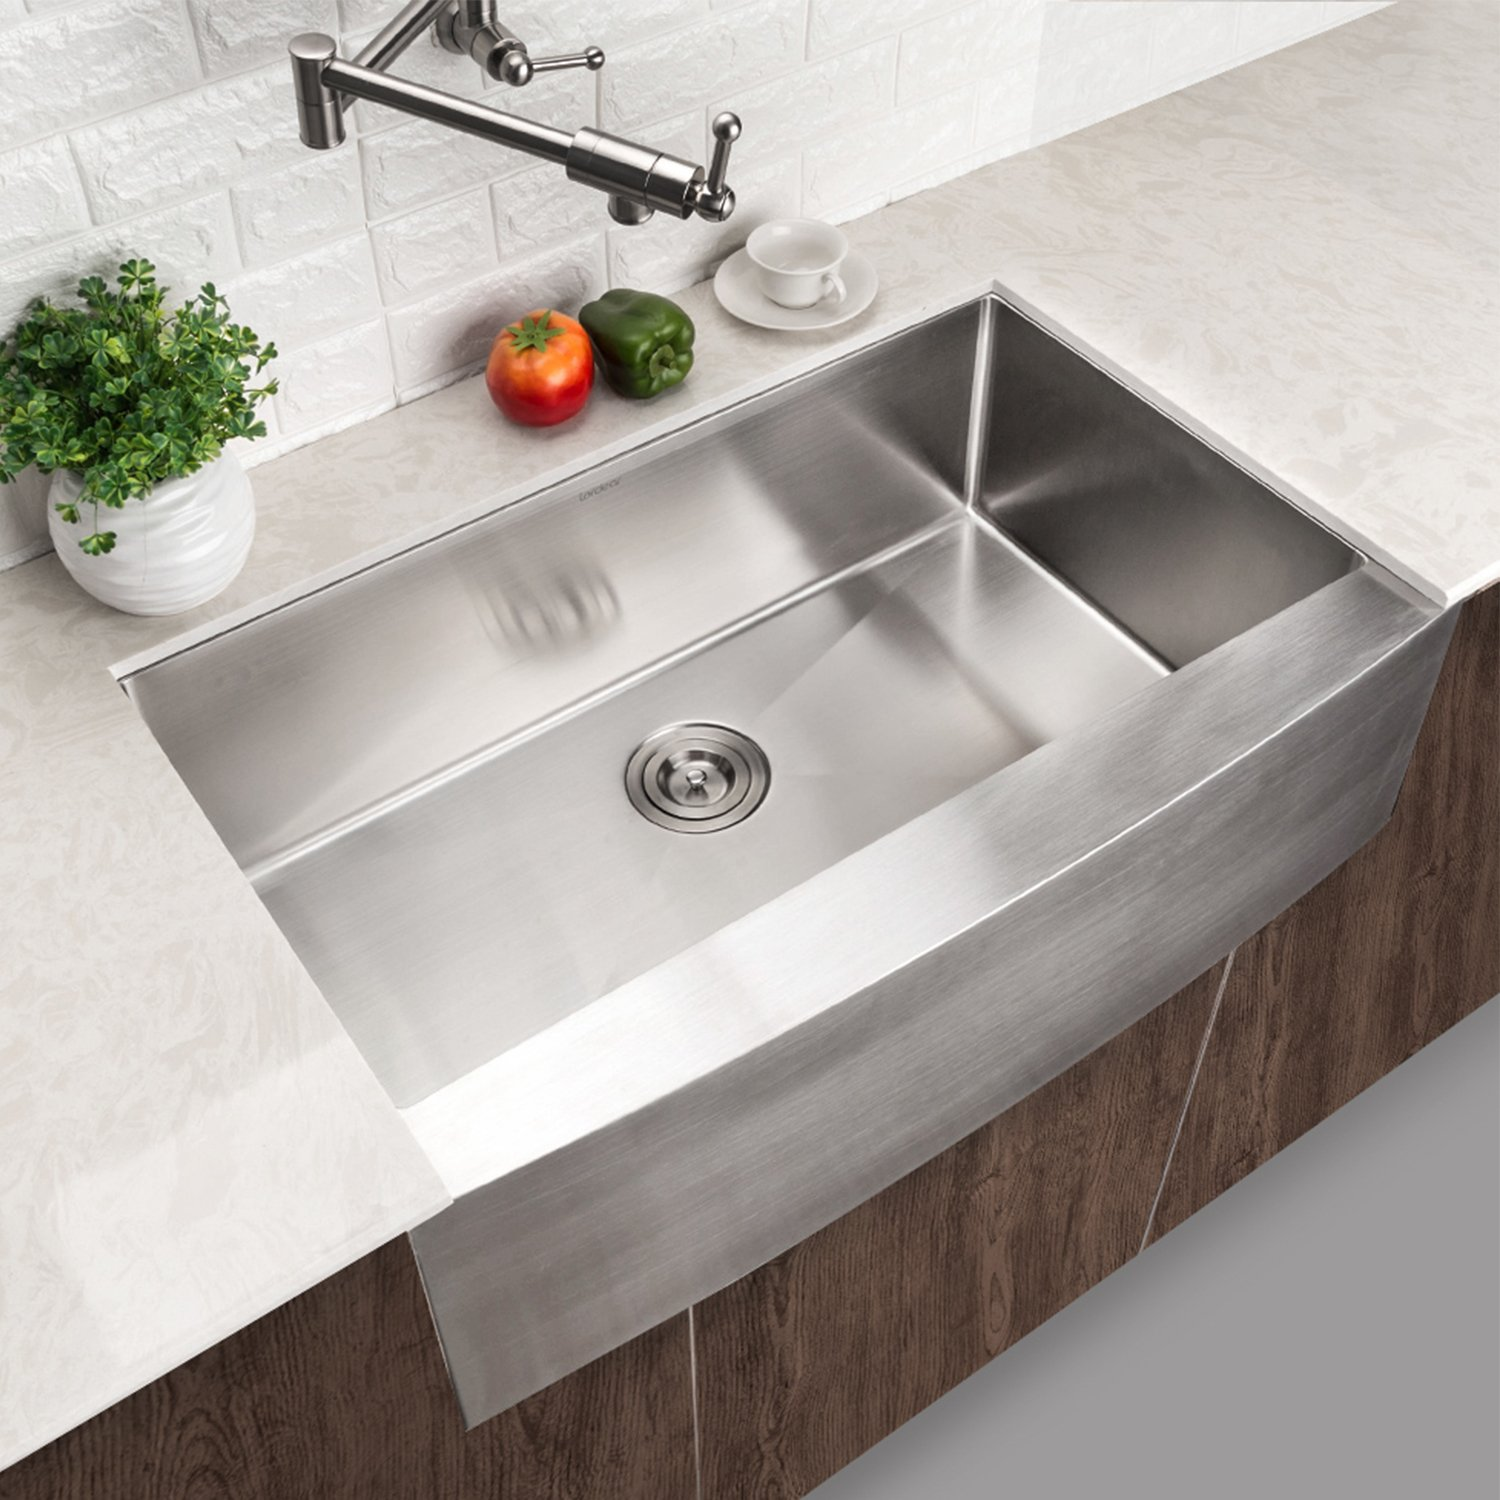 LORDEAR SLJ16003 Commercial 33 Inch 16 Gauge 10 Inch Deep Drop In Stainless Steel Undermout Single Bowl Farmhouse Apron Front Kitchen Sink, Brushed Nickel Farmhouse Kitchen Sink by Lordear (Image #7)